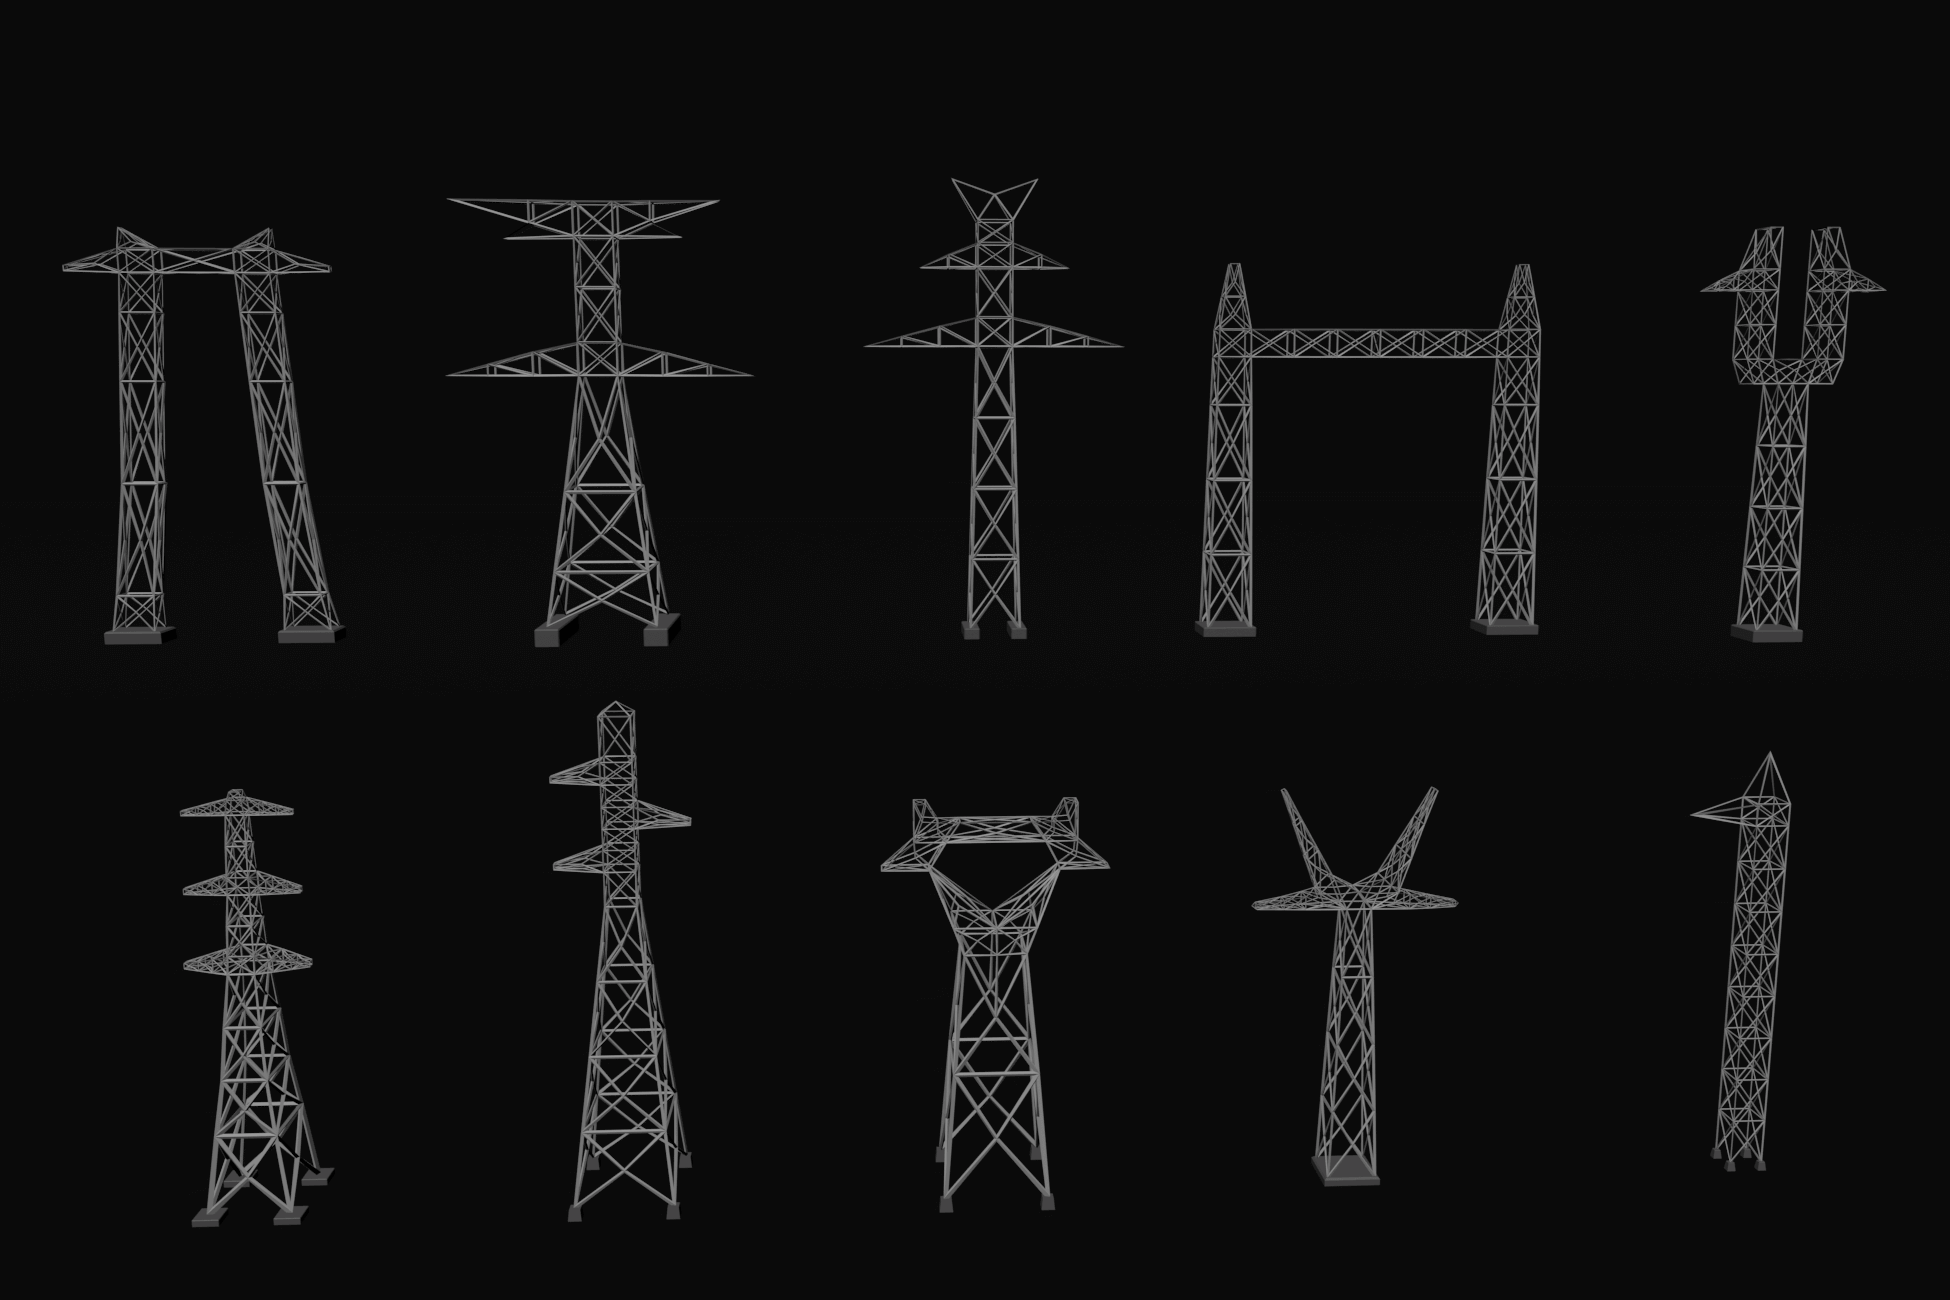 Lowpoly Electric Towers